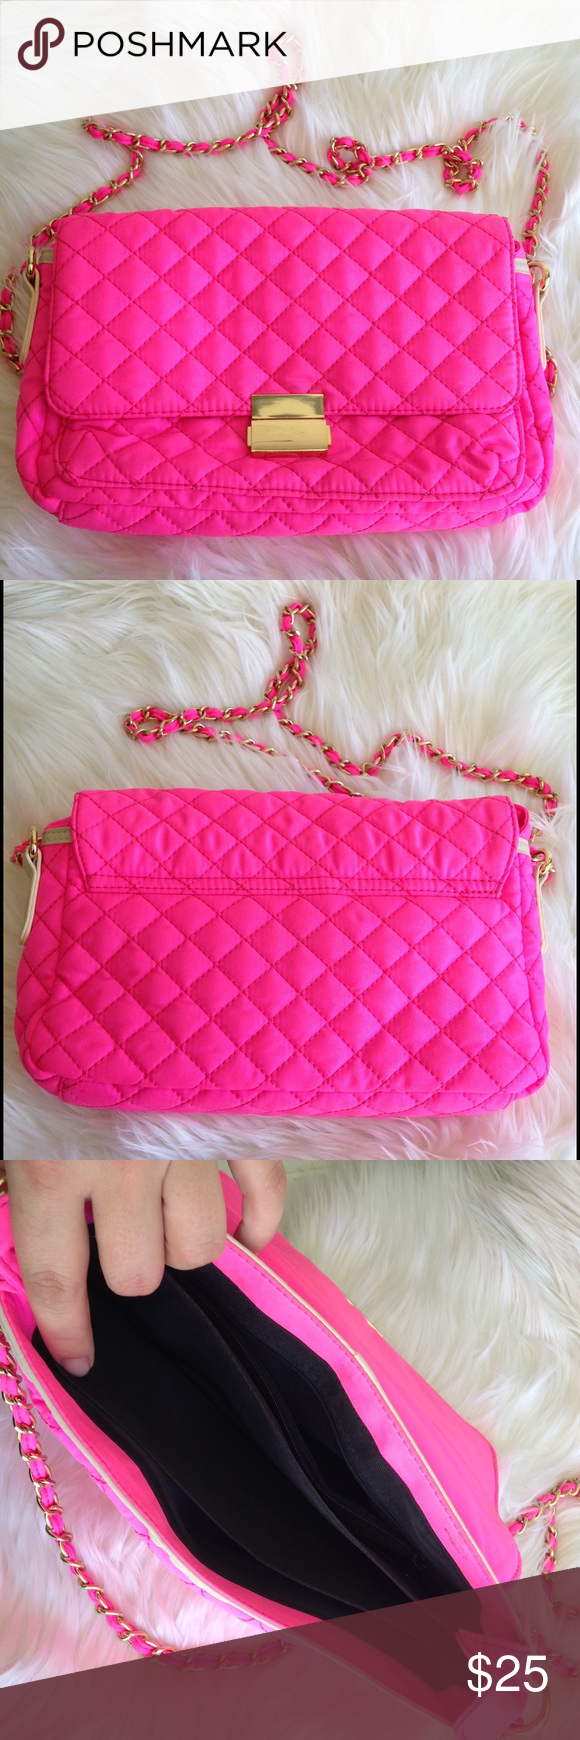 """FOREVER 21 quilted pink bag with chain FOREVER 21 quilted pink bag with chain.  She'll: nylon, lining: polyester.  Has multiple separations inside. Gold detail. Height 7"""", length 10.5"""", width 3"""", chain 25"""".  Small stain on the inside of the flop ( see last pic). Good condition, no rips.  Best offer. Forever 21 Bags Shoulder Bags"""